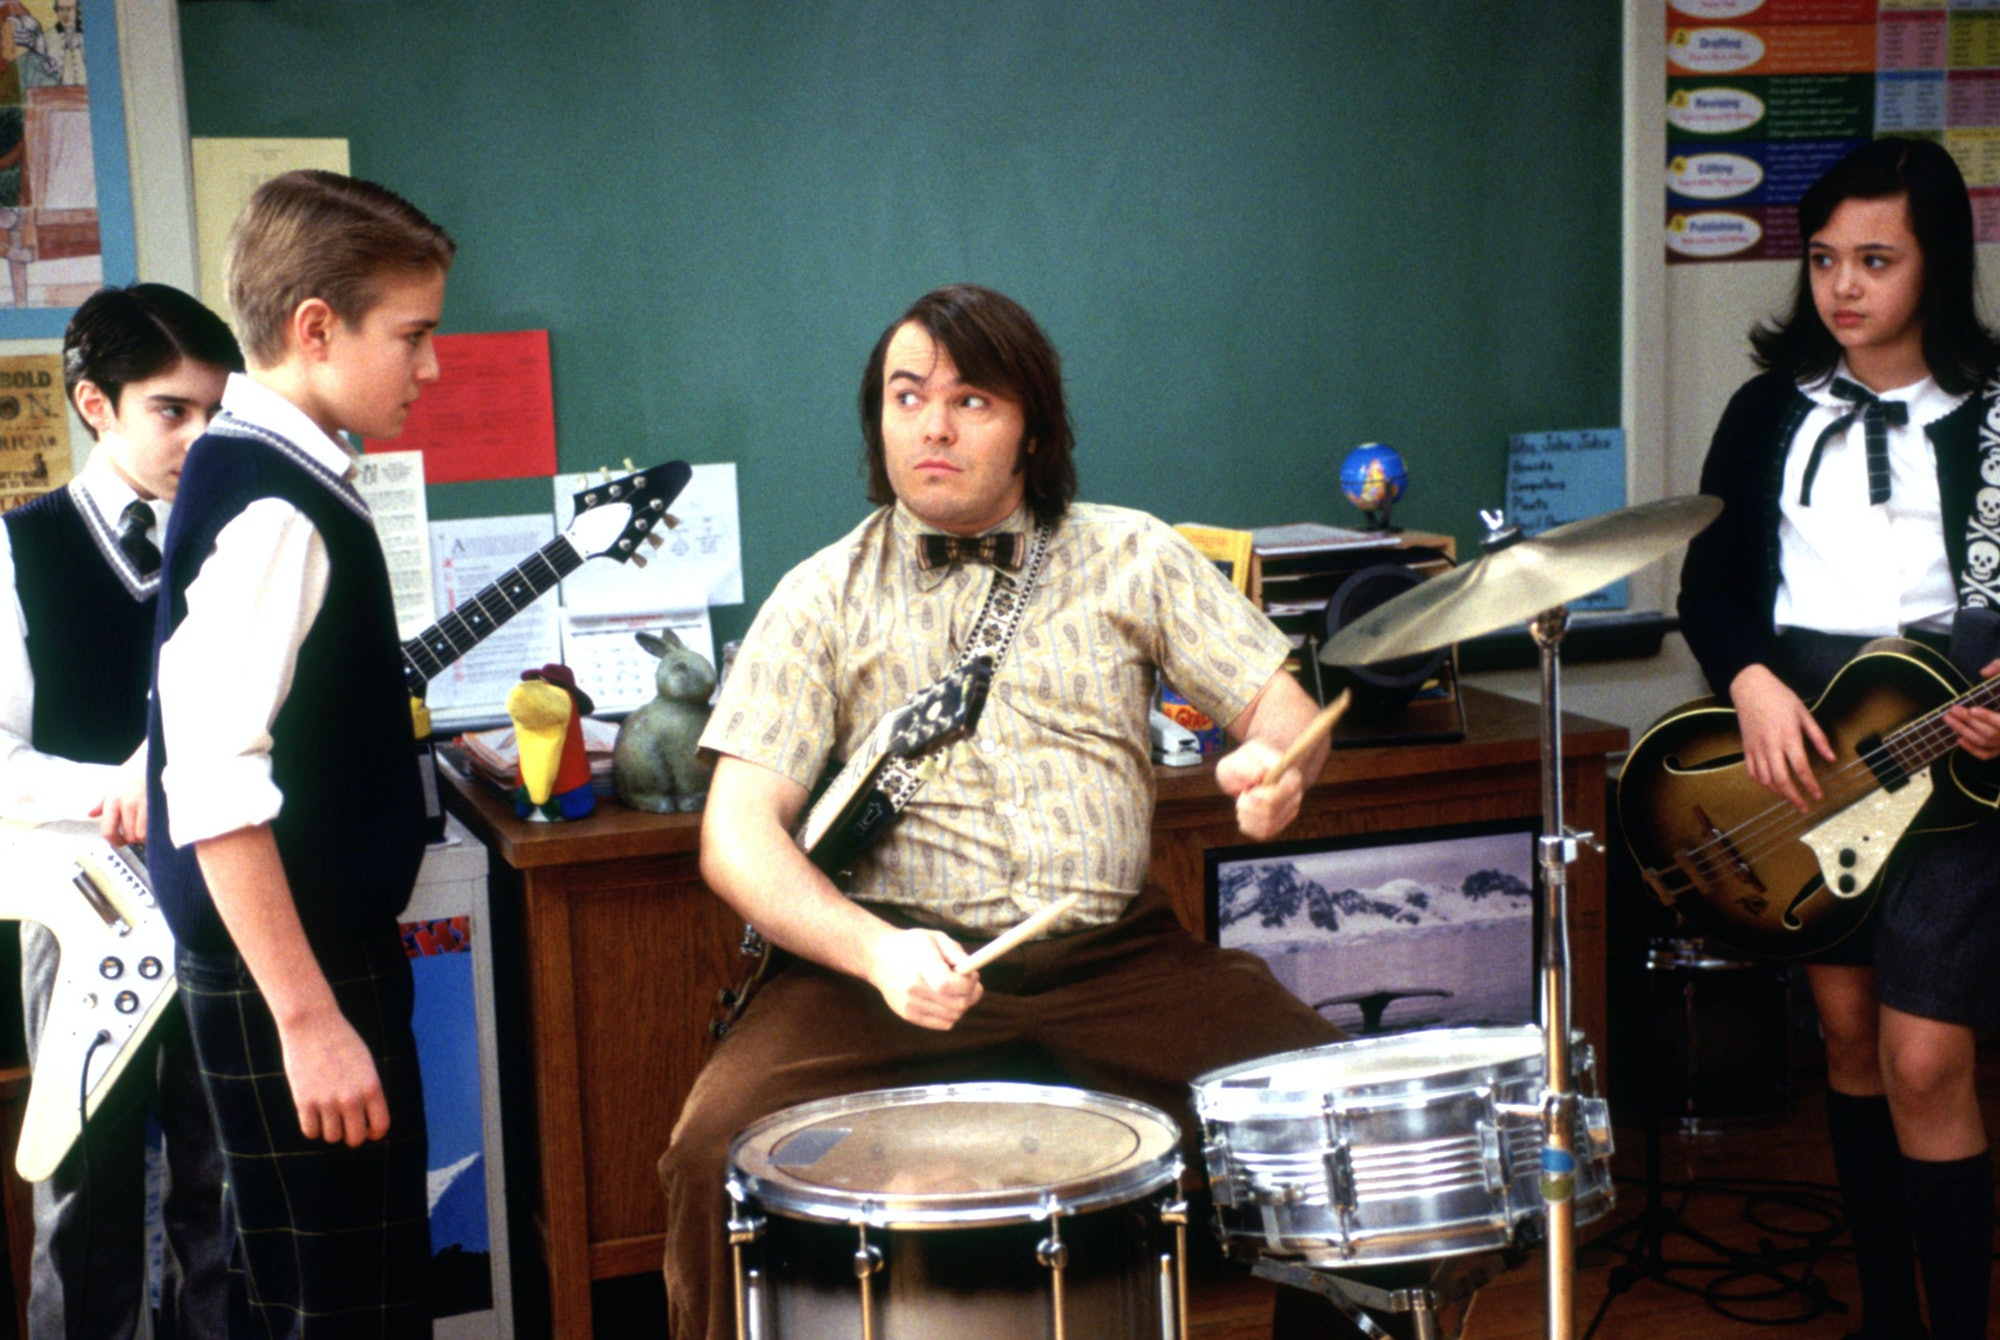 School Of Rock Isnt On Netflix But These 19 Movies Will Help You